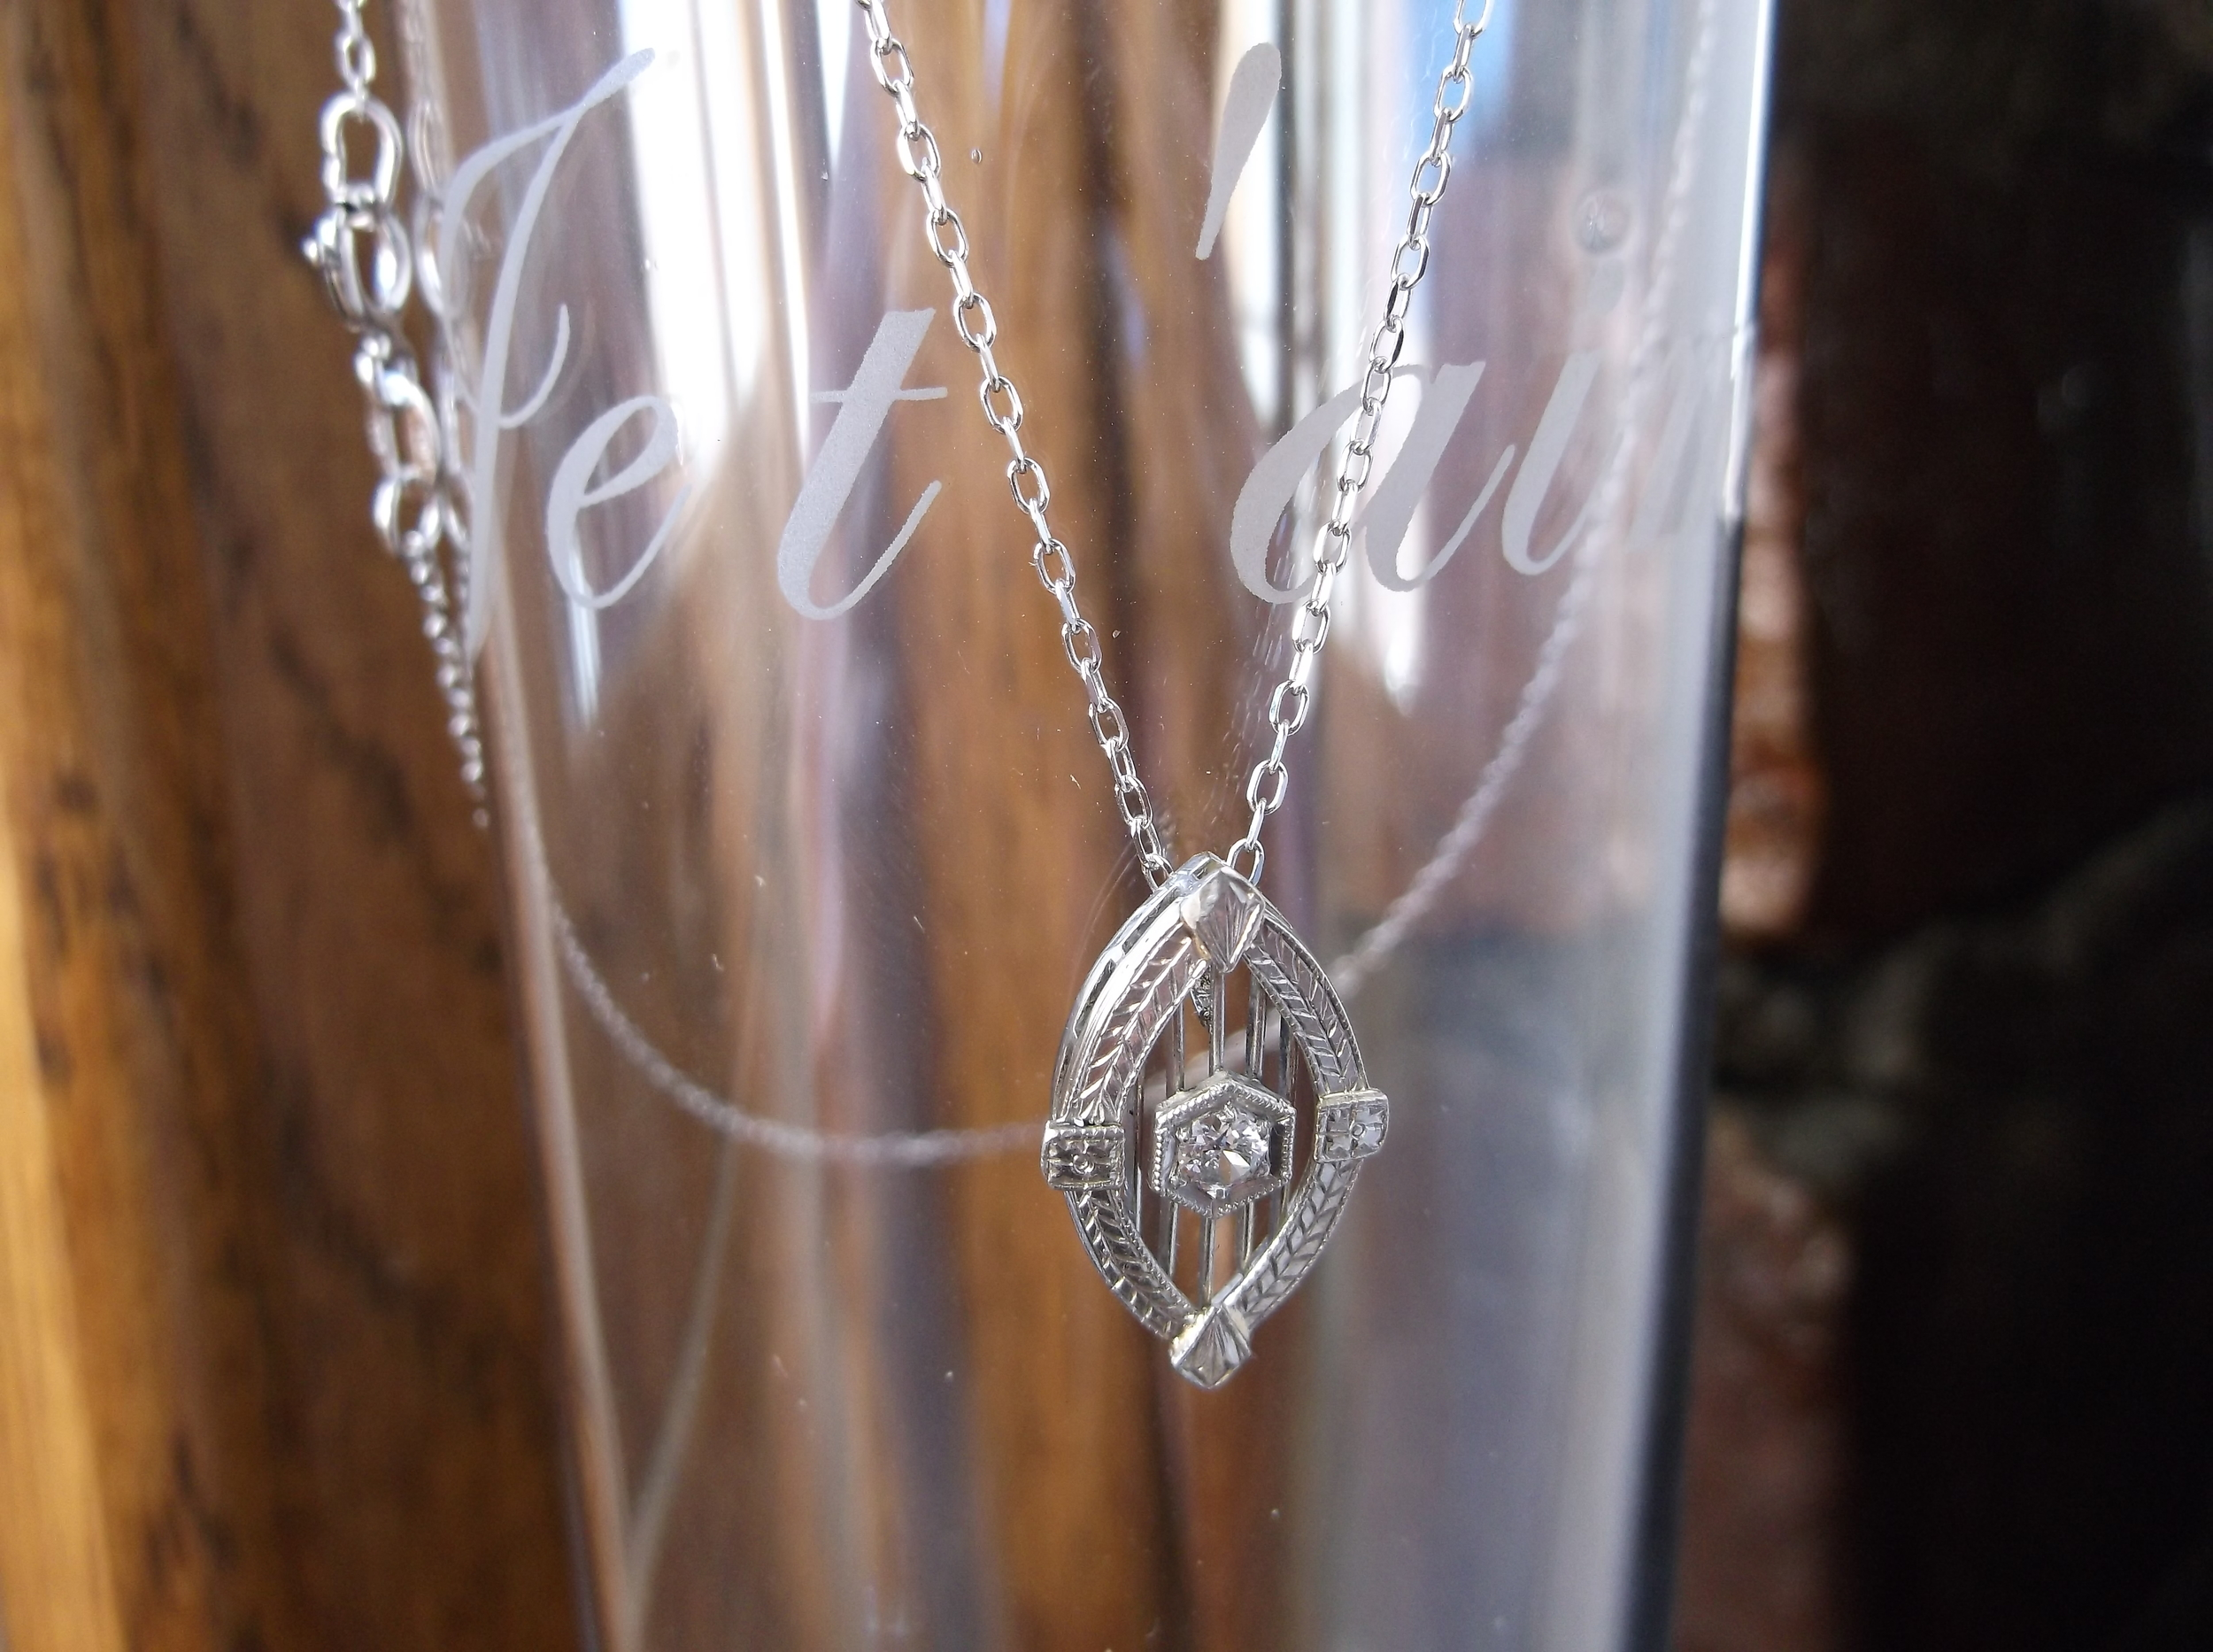 SOLD - Lovely 1920's diamond filigree pendant in white gold.